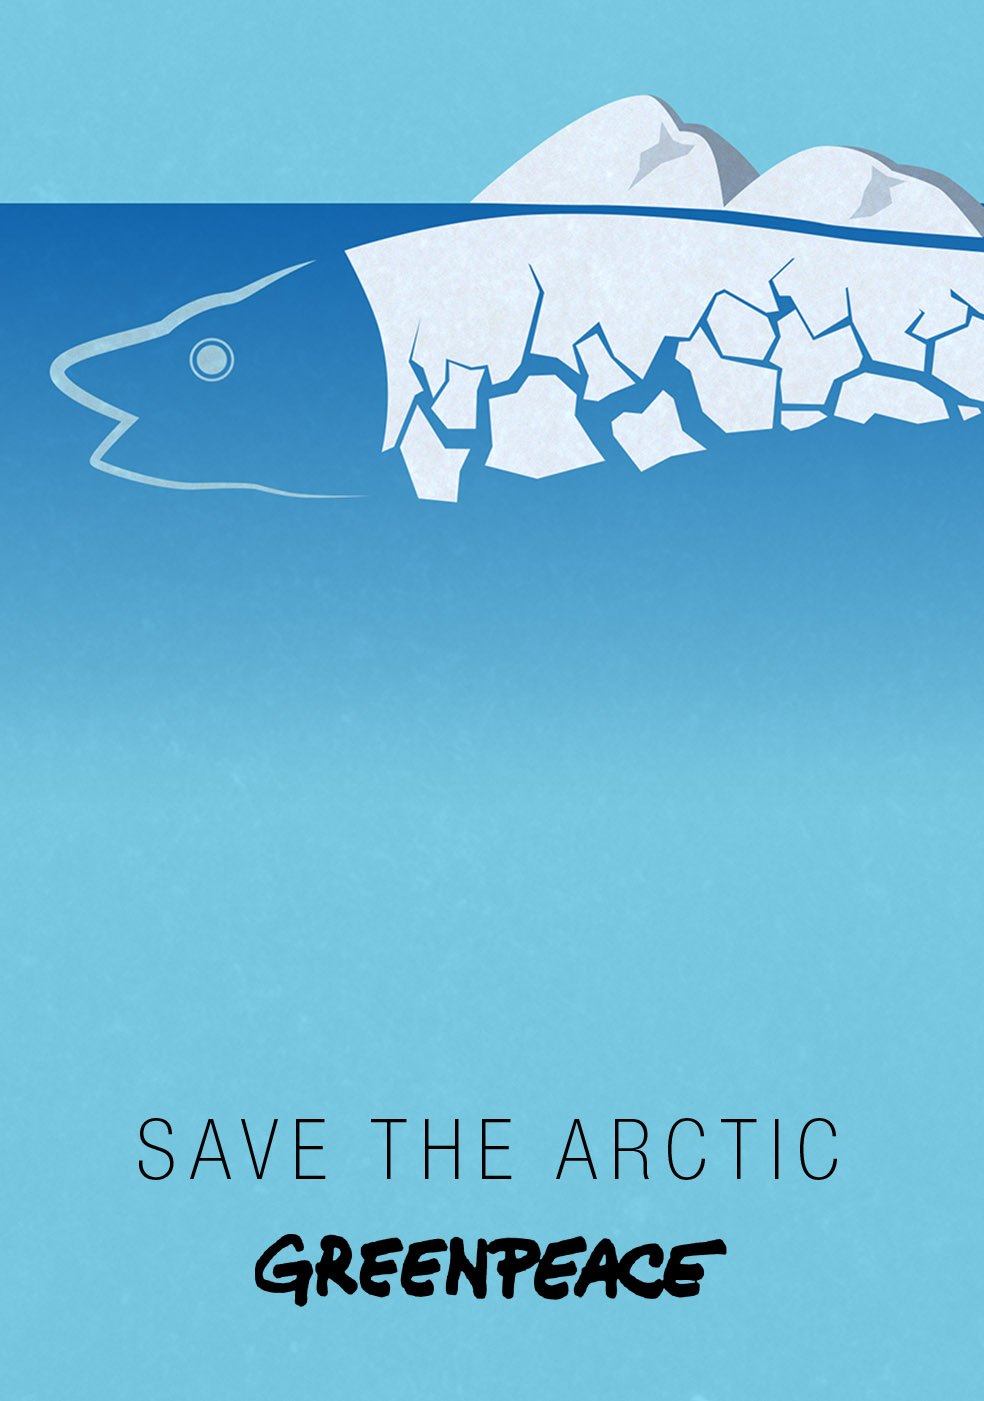 Greenpeace – Save the arctic